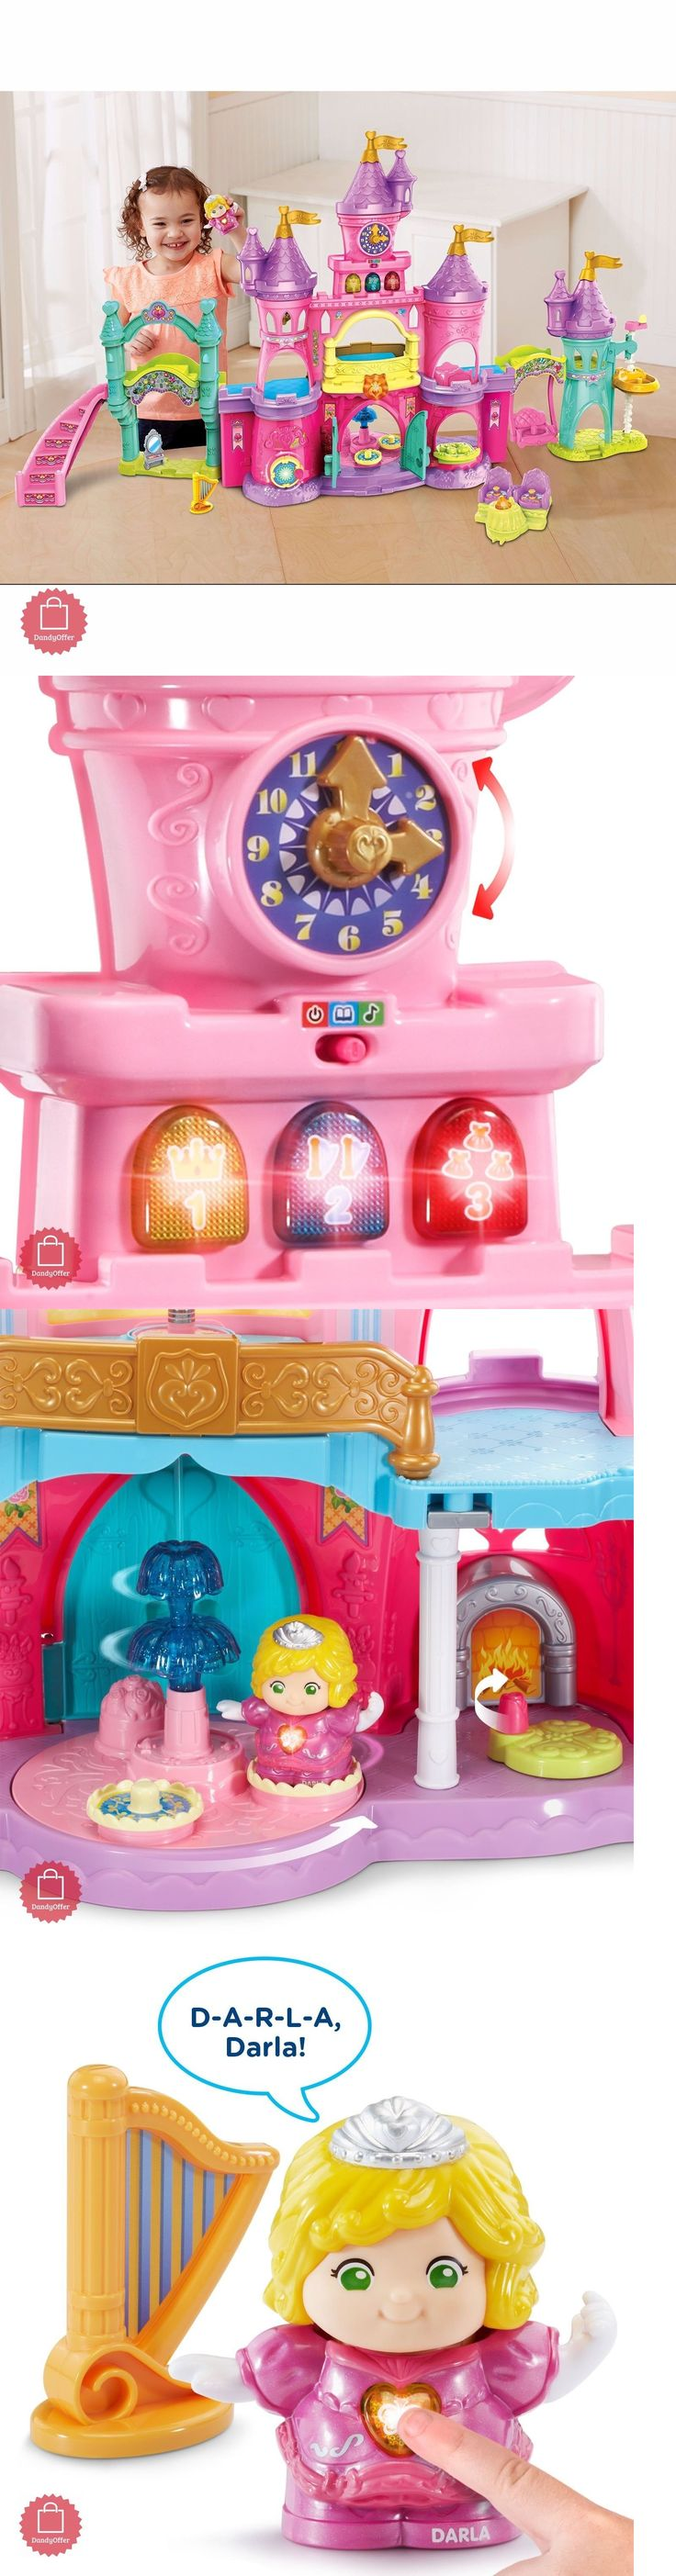 Baby: Educational Toys For 2 Year Olds Age 3 4 5 Toddlers Girls Learning Gift Castle -> BUY IT NOW ONLY: $57.74 on eBay!